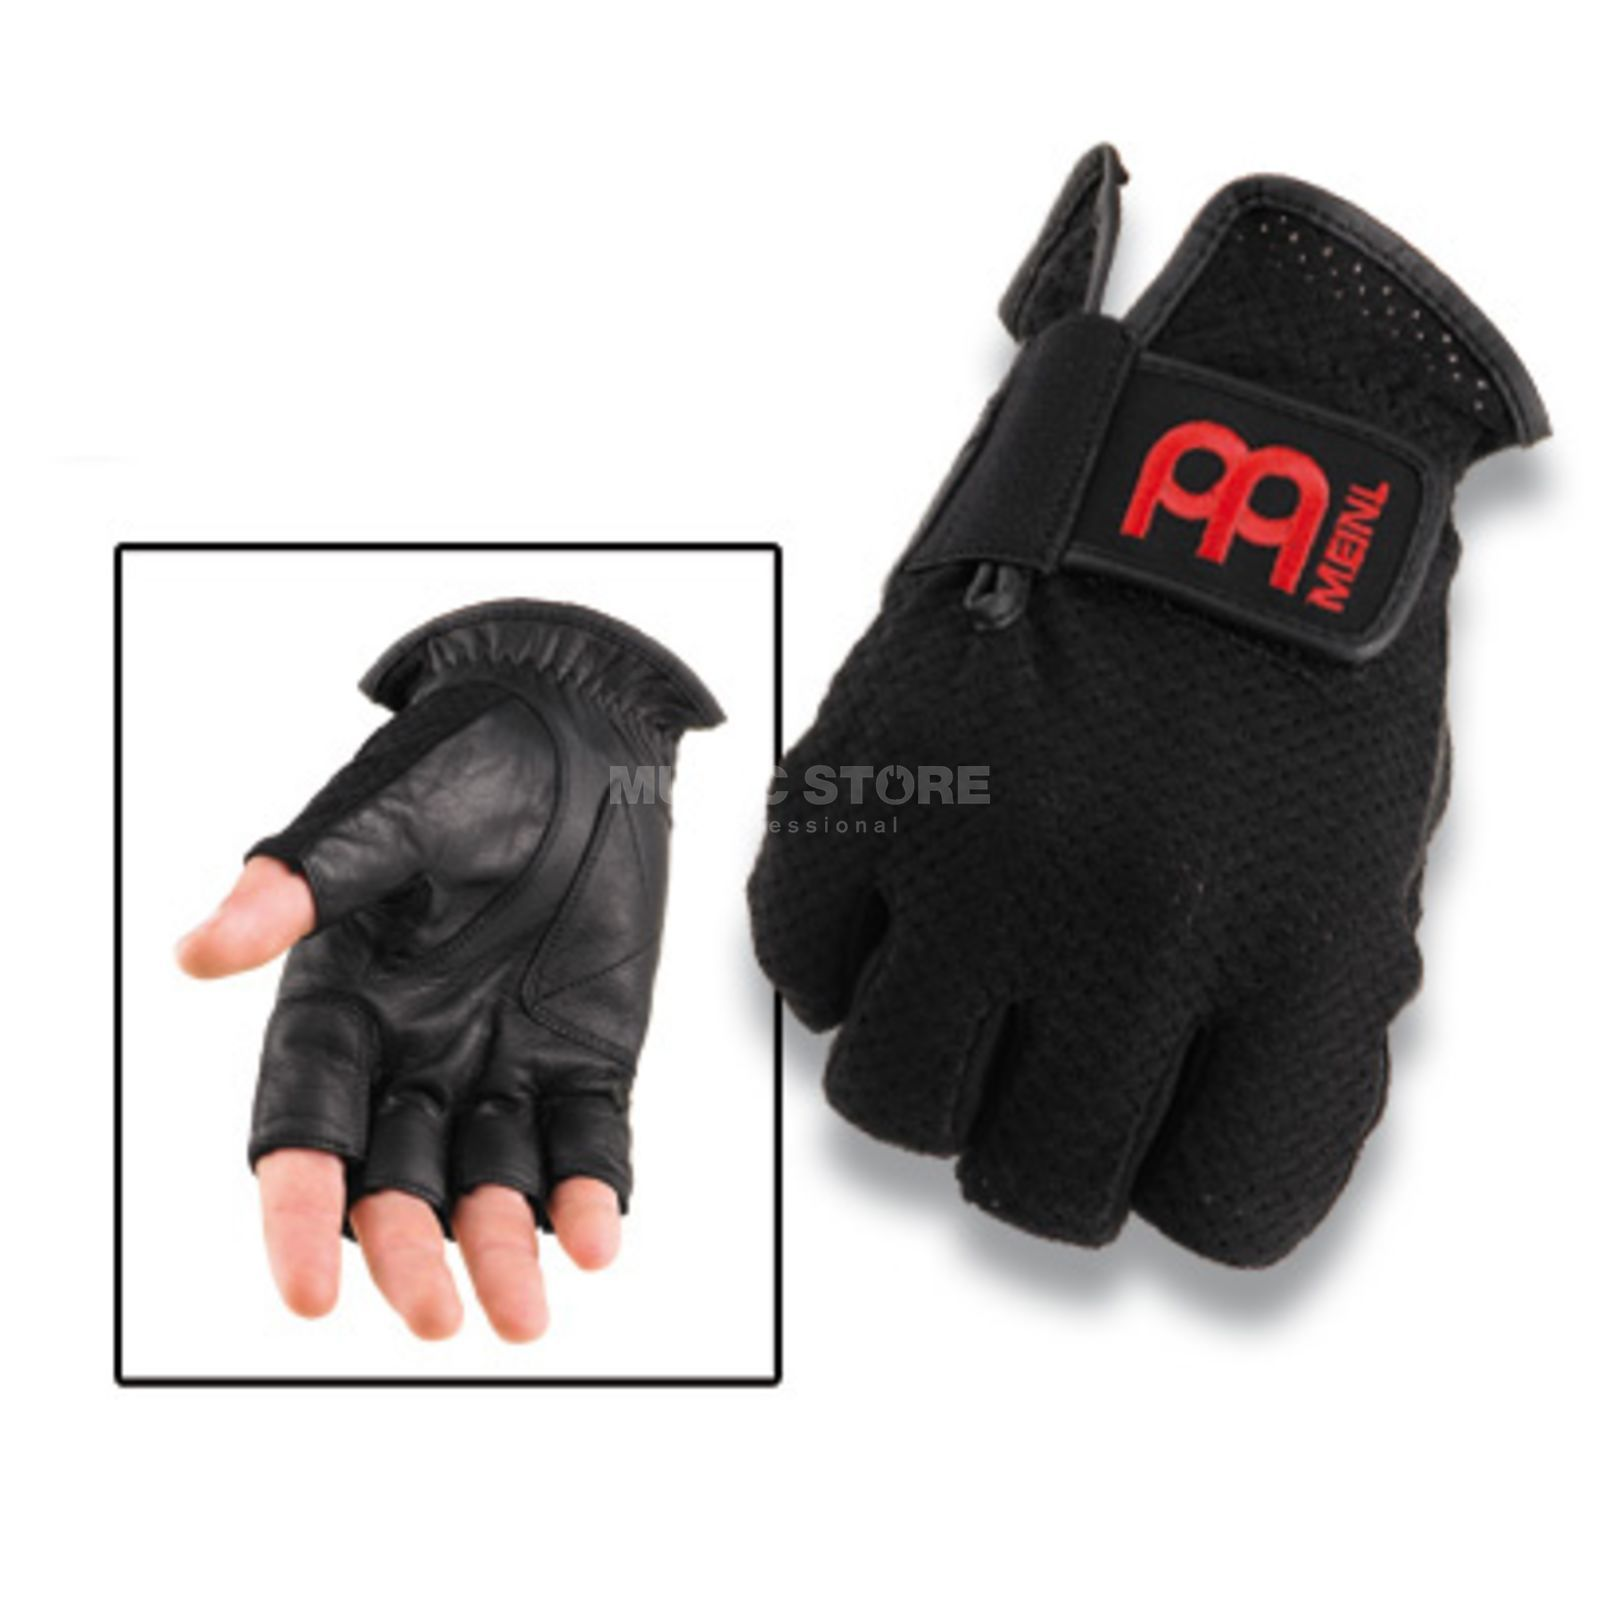 Meinl Drummer Gloves MDGFL-XL, medium, w/o fingers Produktbillede